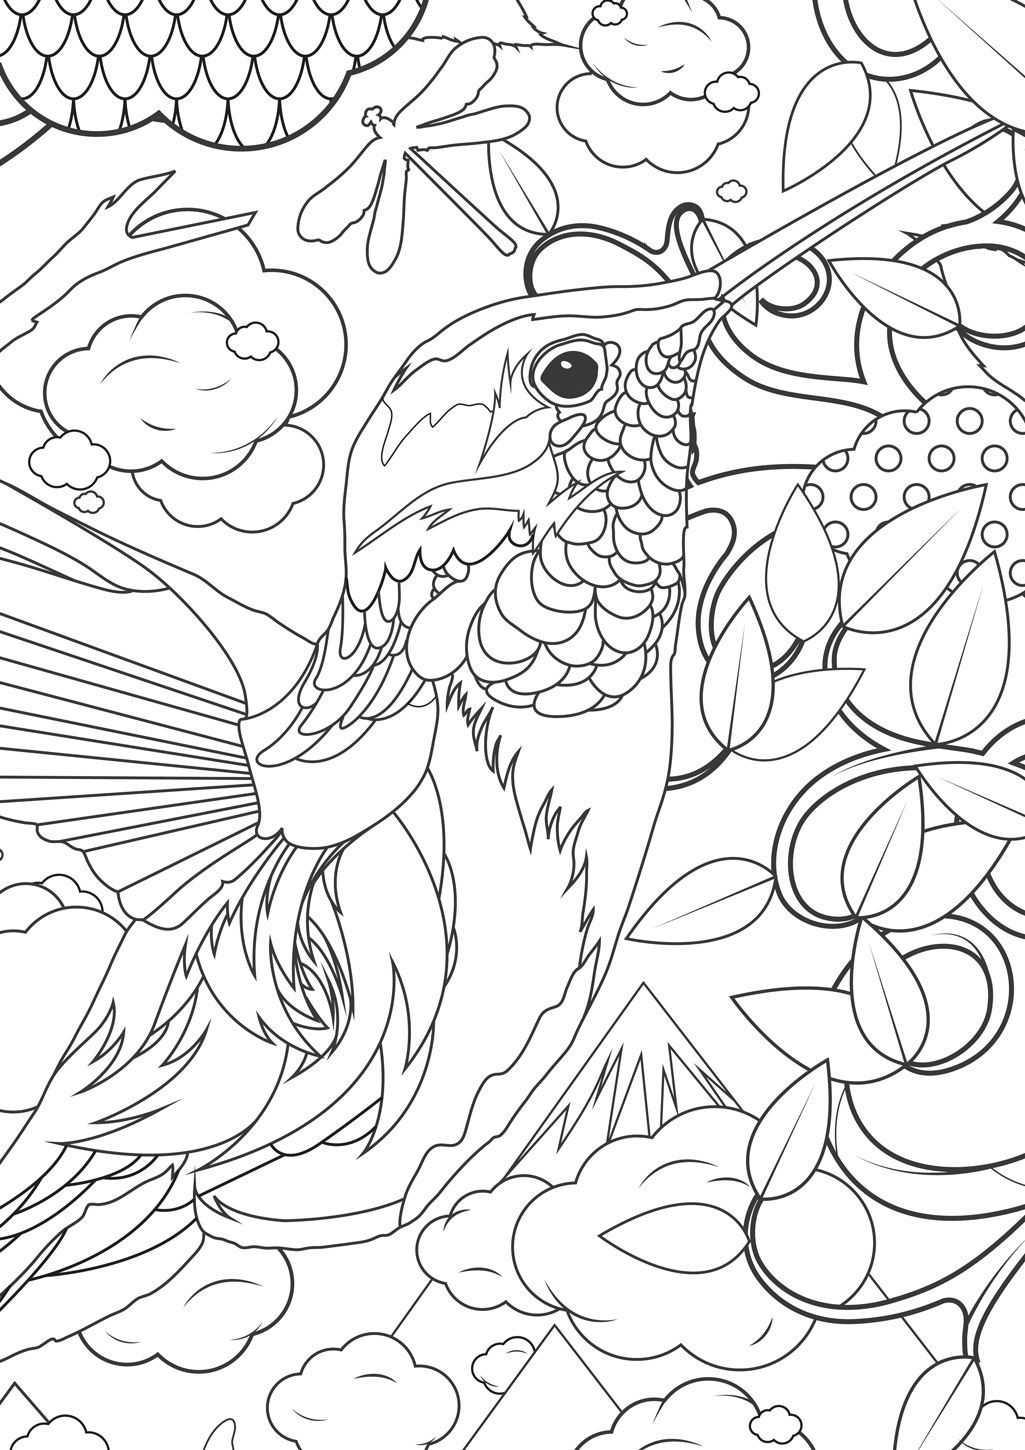 advanced coloring pages for older kids | Colorings | Pinterest ...